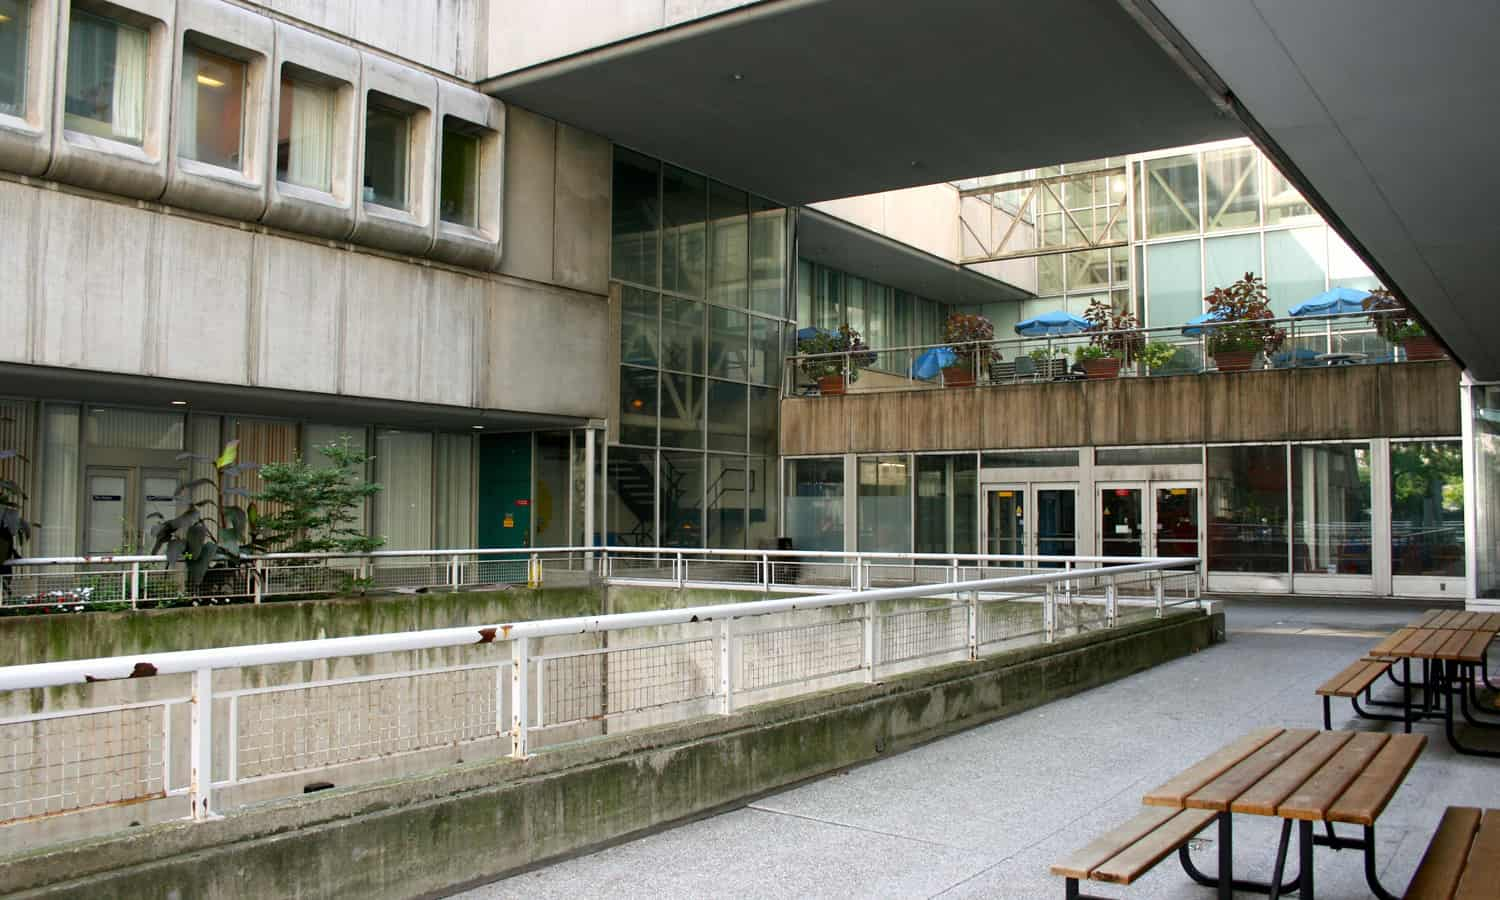 One of a series of interconnected exterior spaces that weave through the building connecting it back to the larger campus